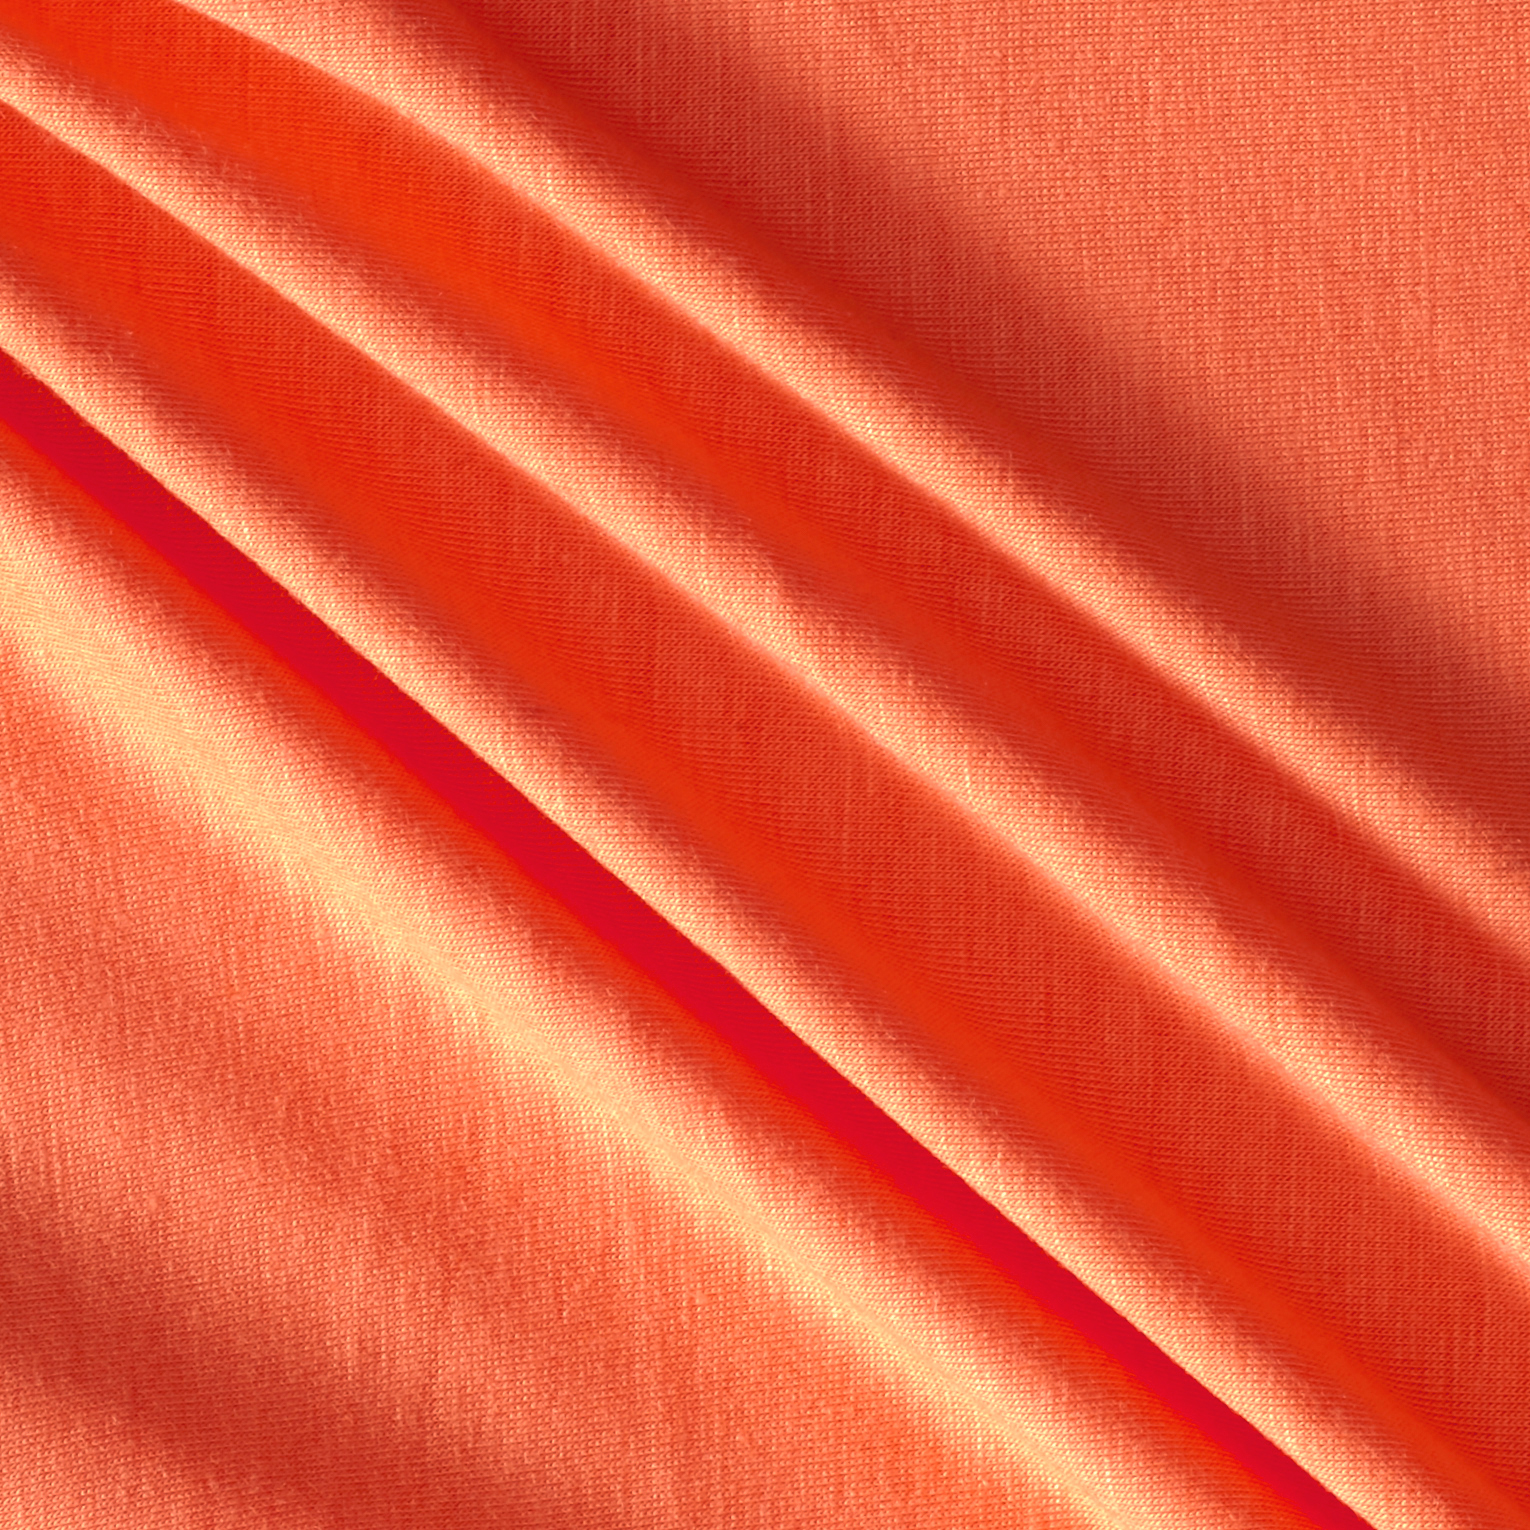 Jersey Knit Solid Orangina Fabric by Neiman in USA